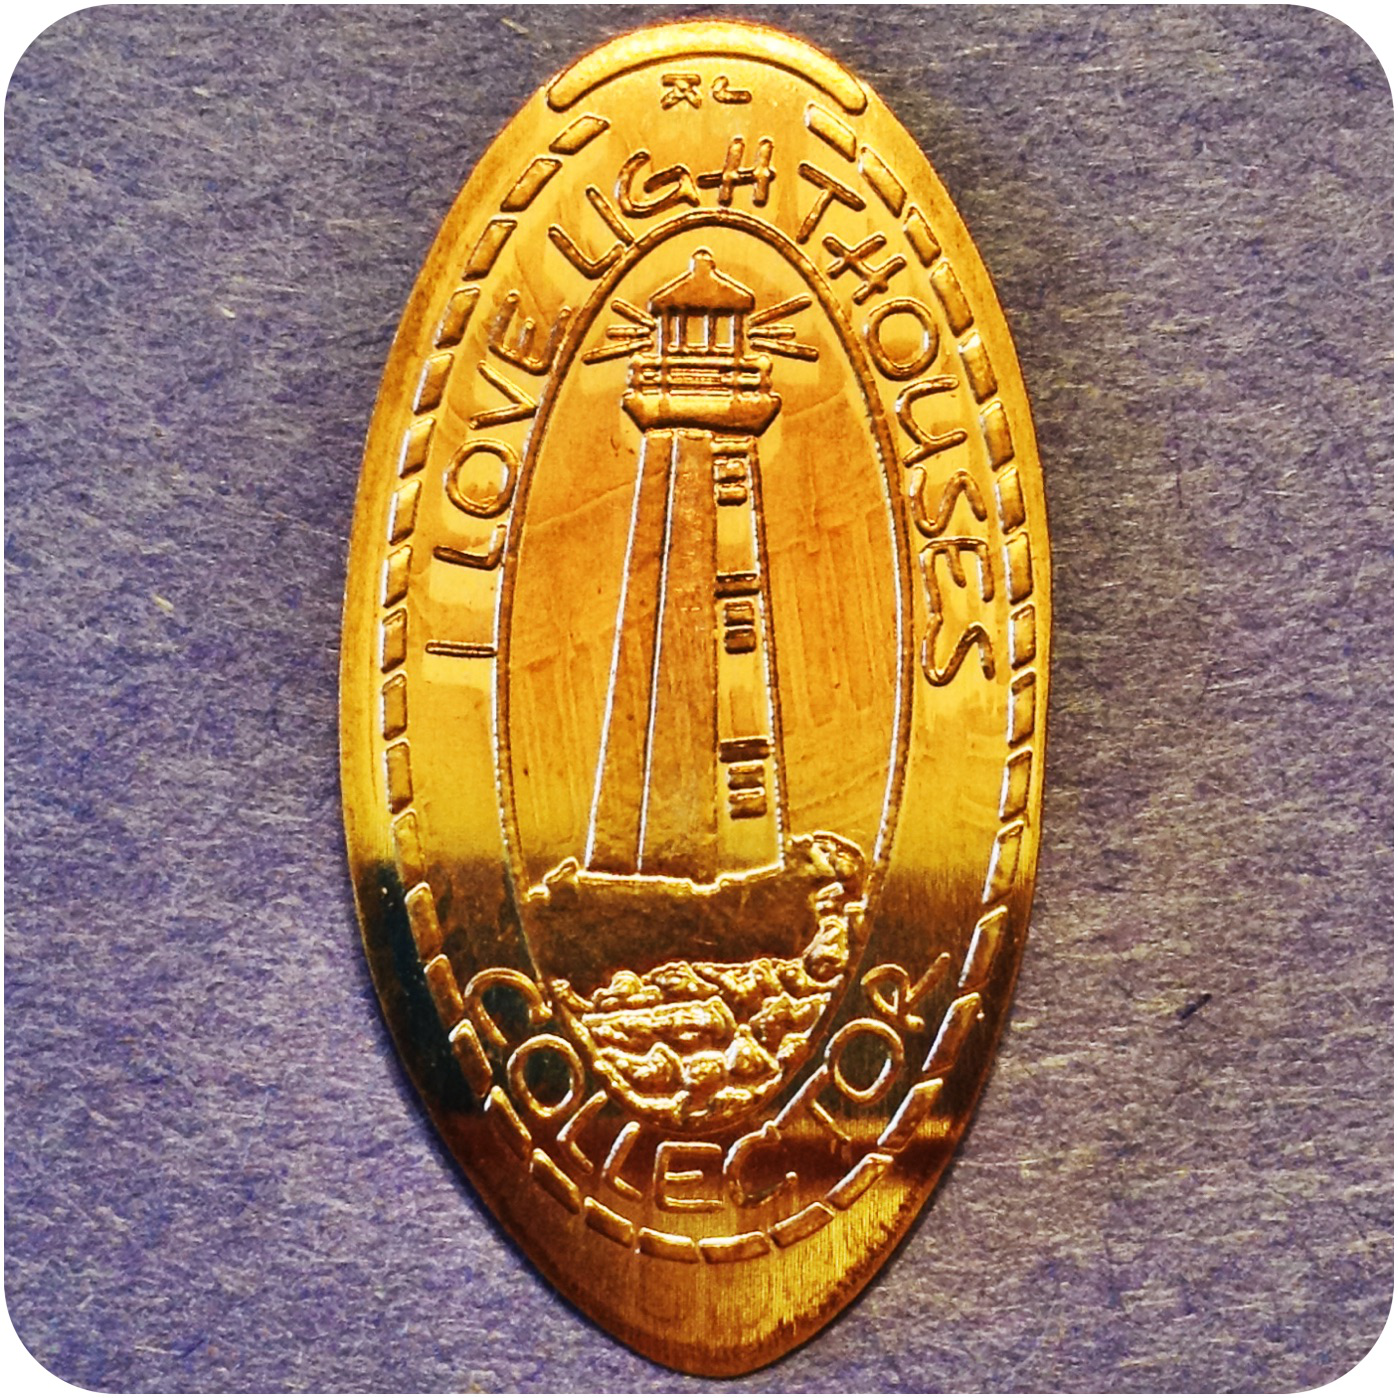 I Love Lighthouses Elongated Copper Collector Coin by James Kilcoyne in Kentucky